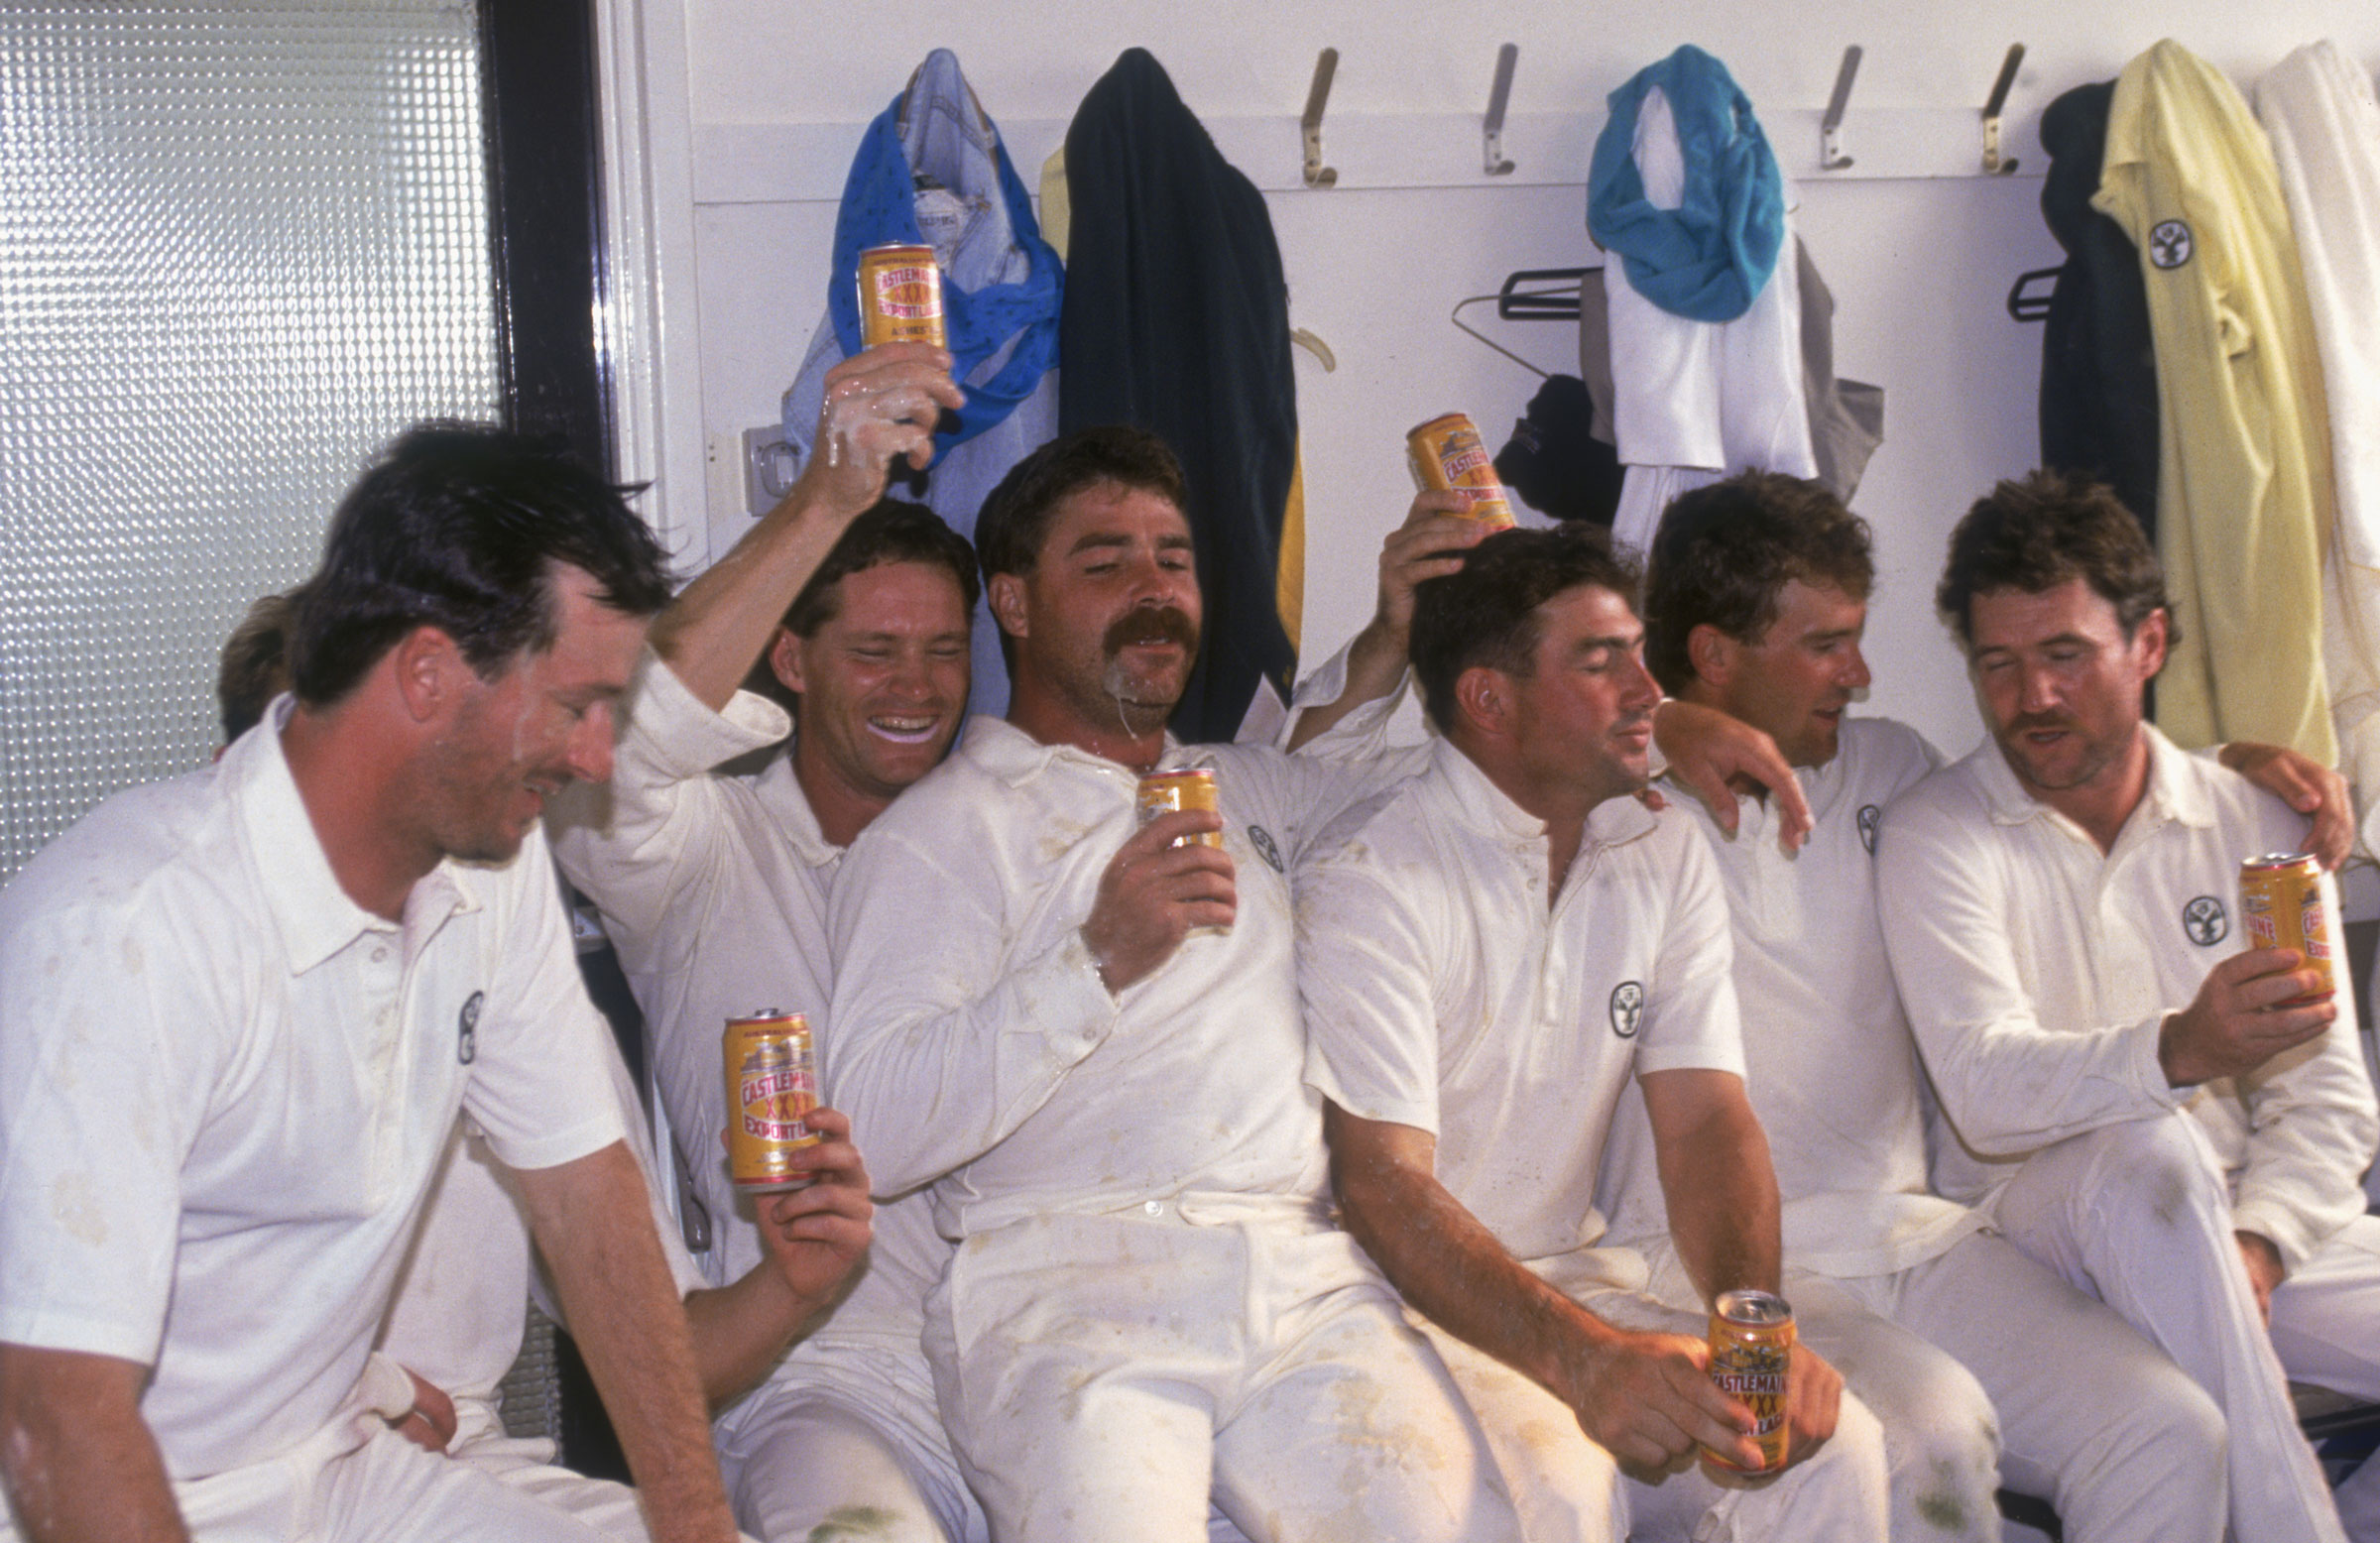 Australia players celebrate their victory at Headingley in 1989 // Getty Images